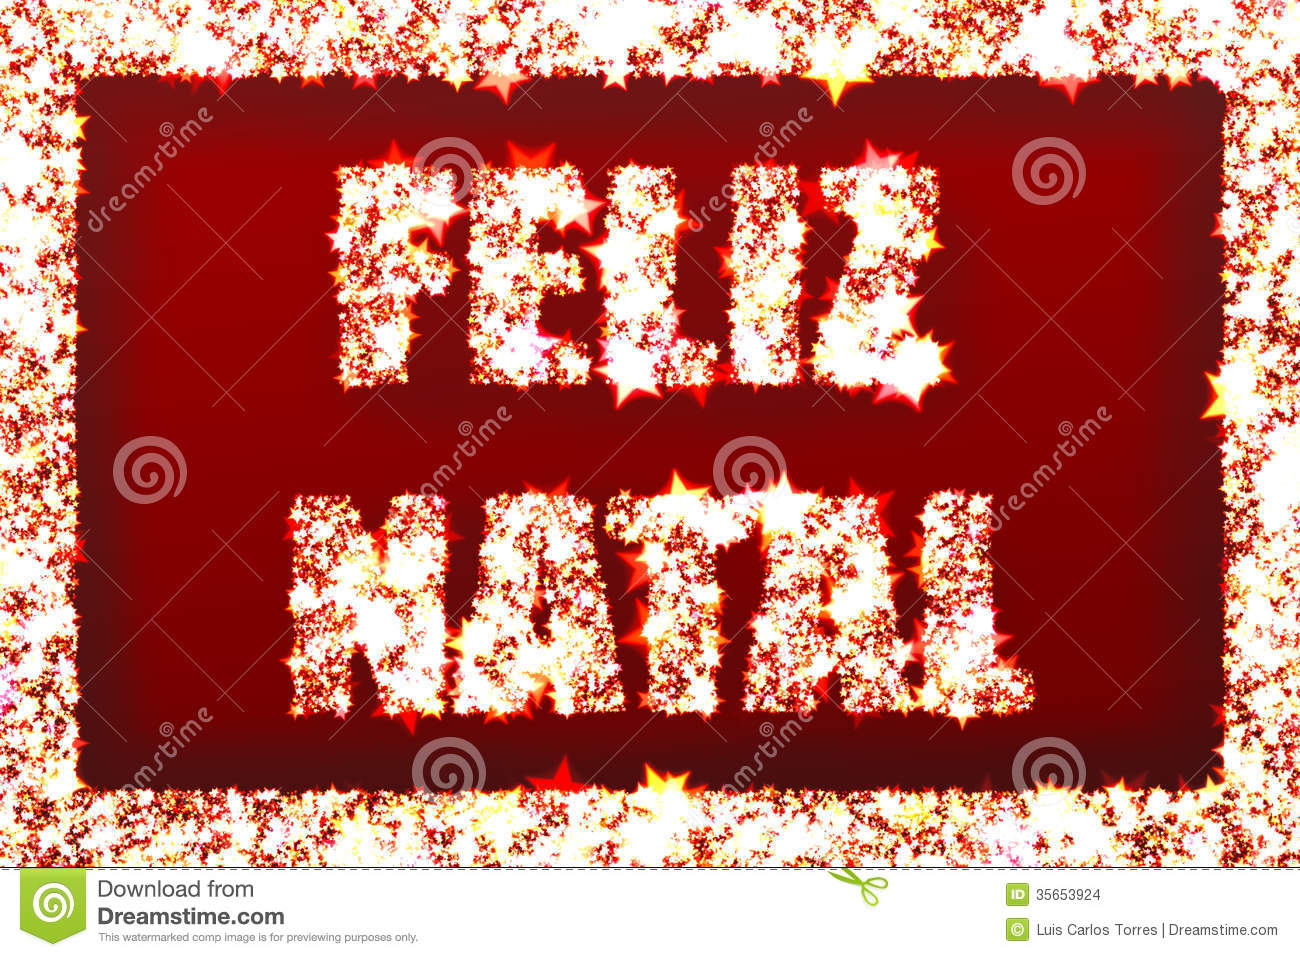 How Do You Say Merry Christmas In Portuguese.Merry Christmas Greetings In Portuguese Xmast 2